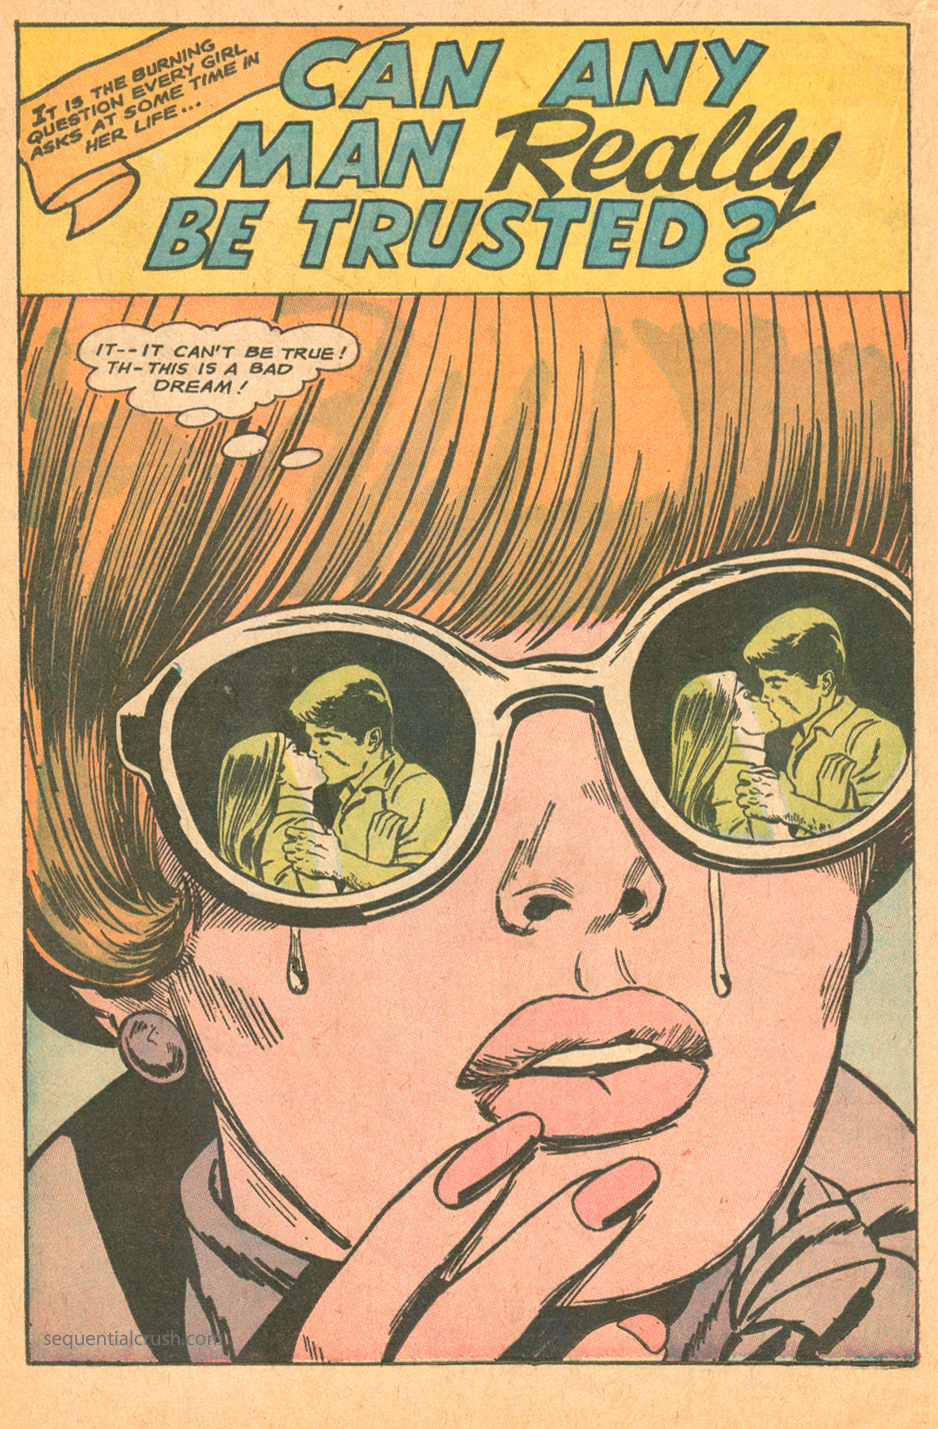 Can any man really be trusted romance comic book story dc comics jay scott pike